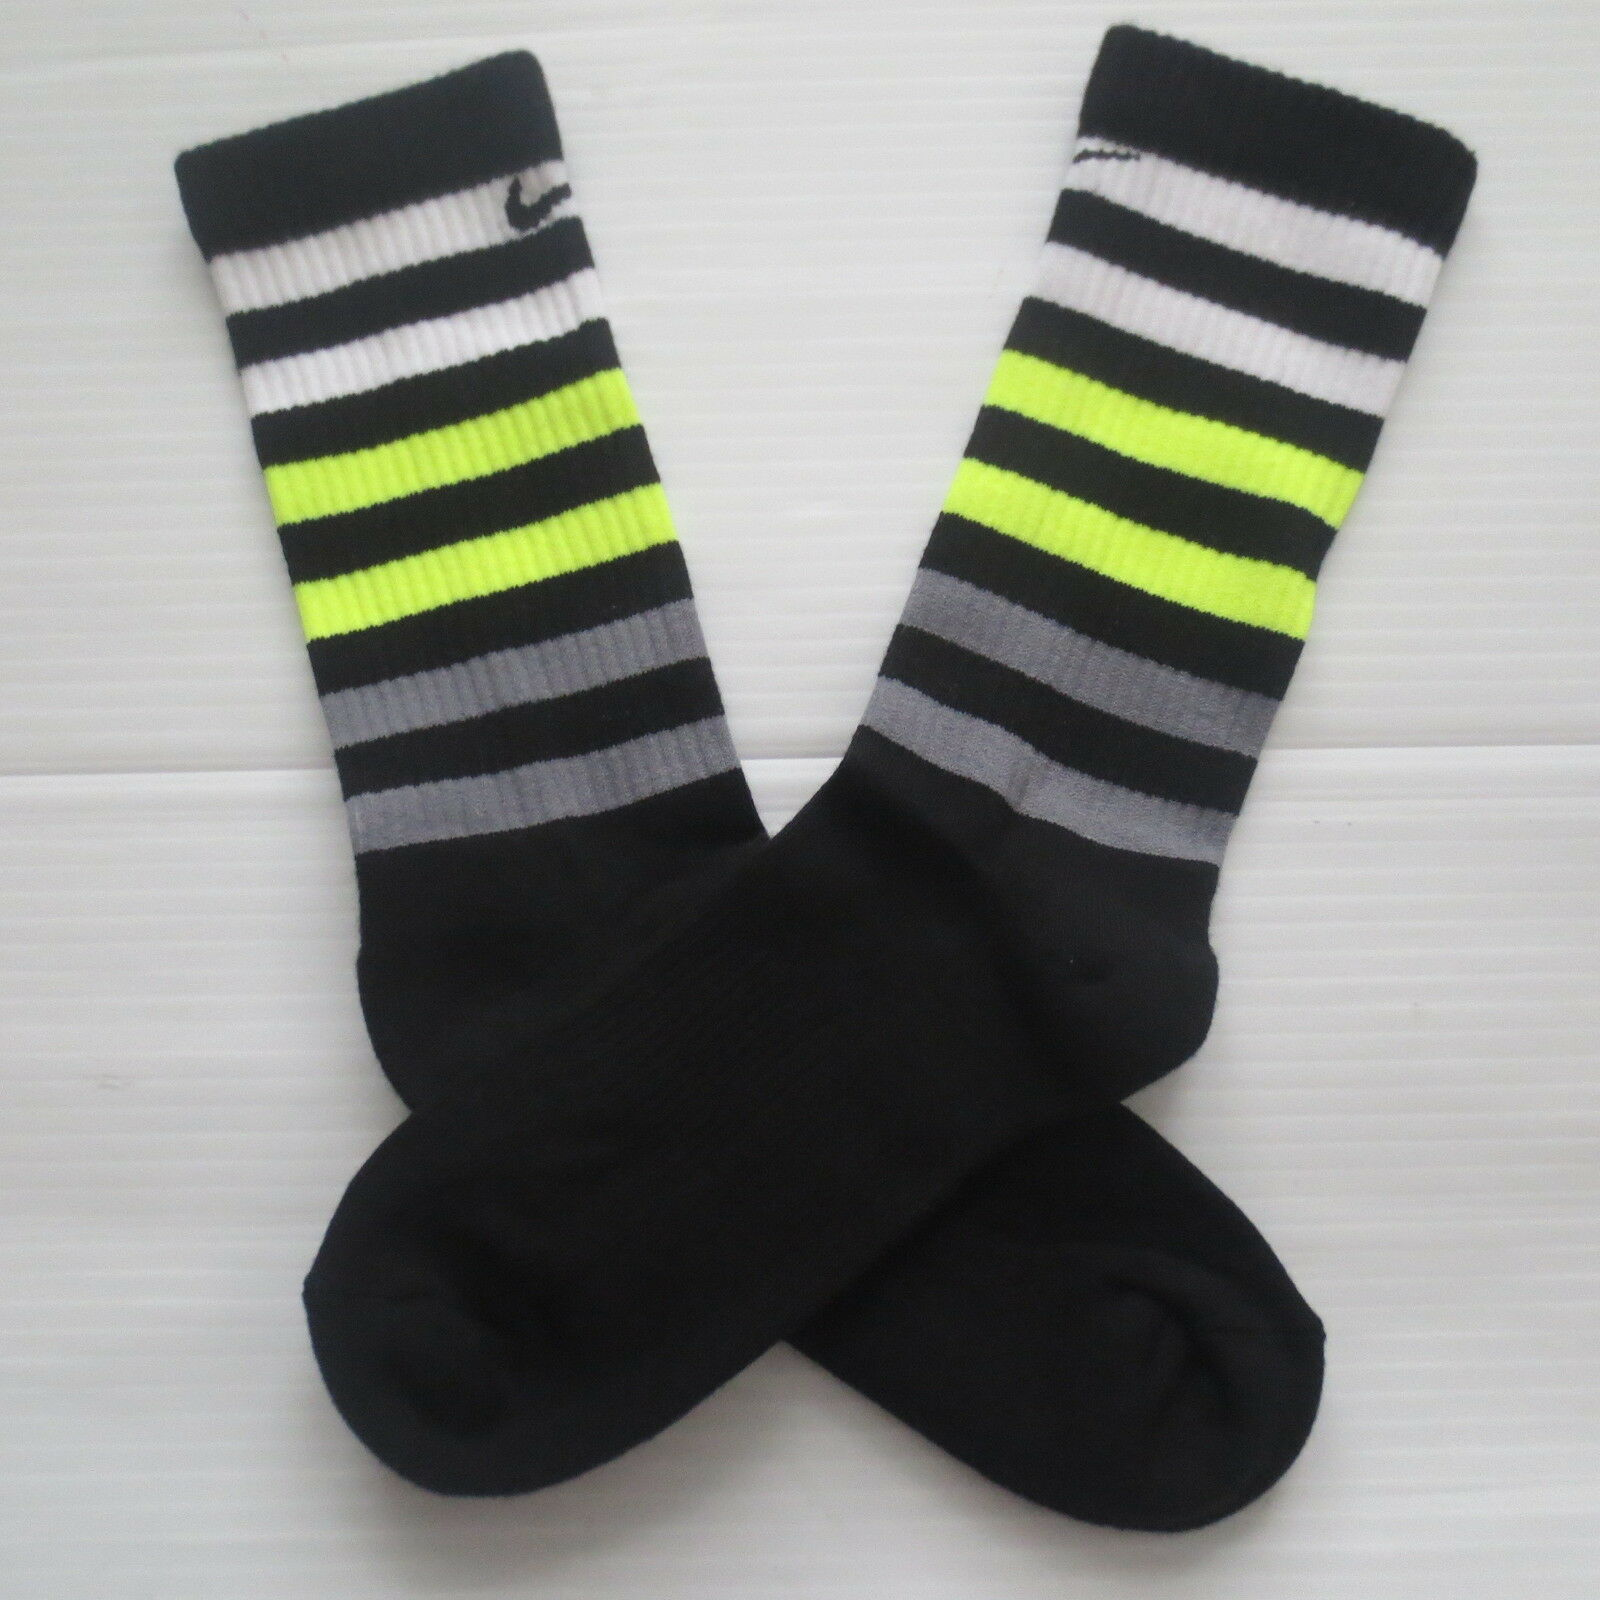 Nike Youth Performance Crew Socks - SX5815 - Black - Size M - NEW